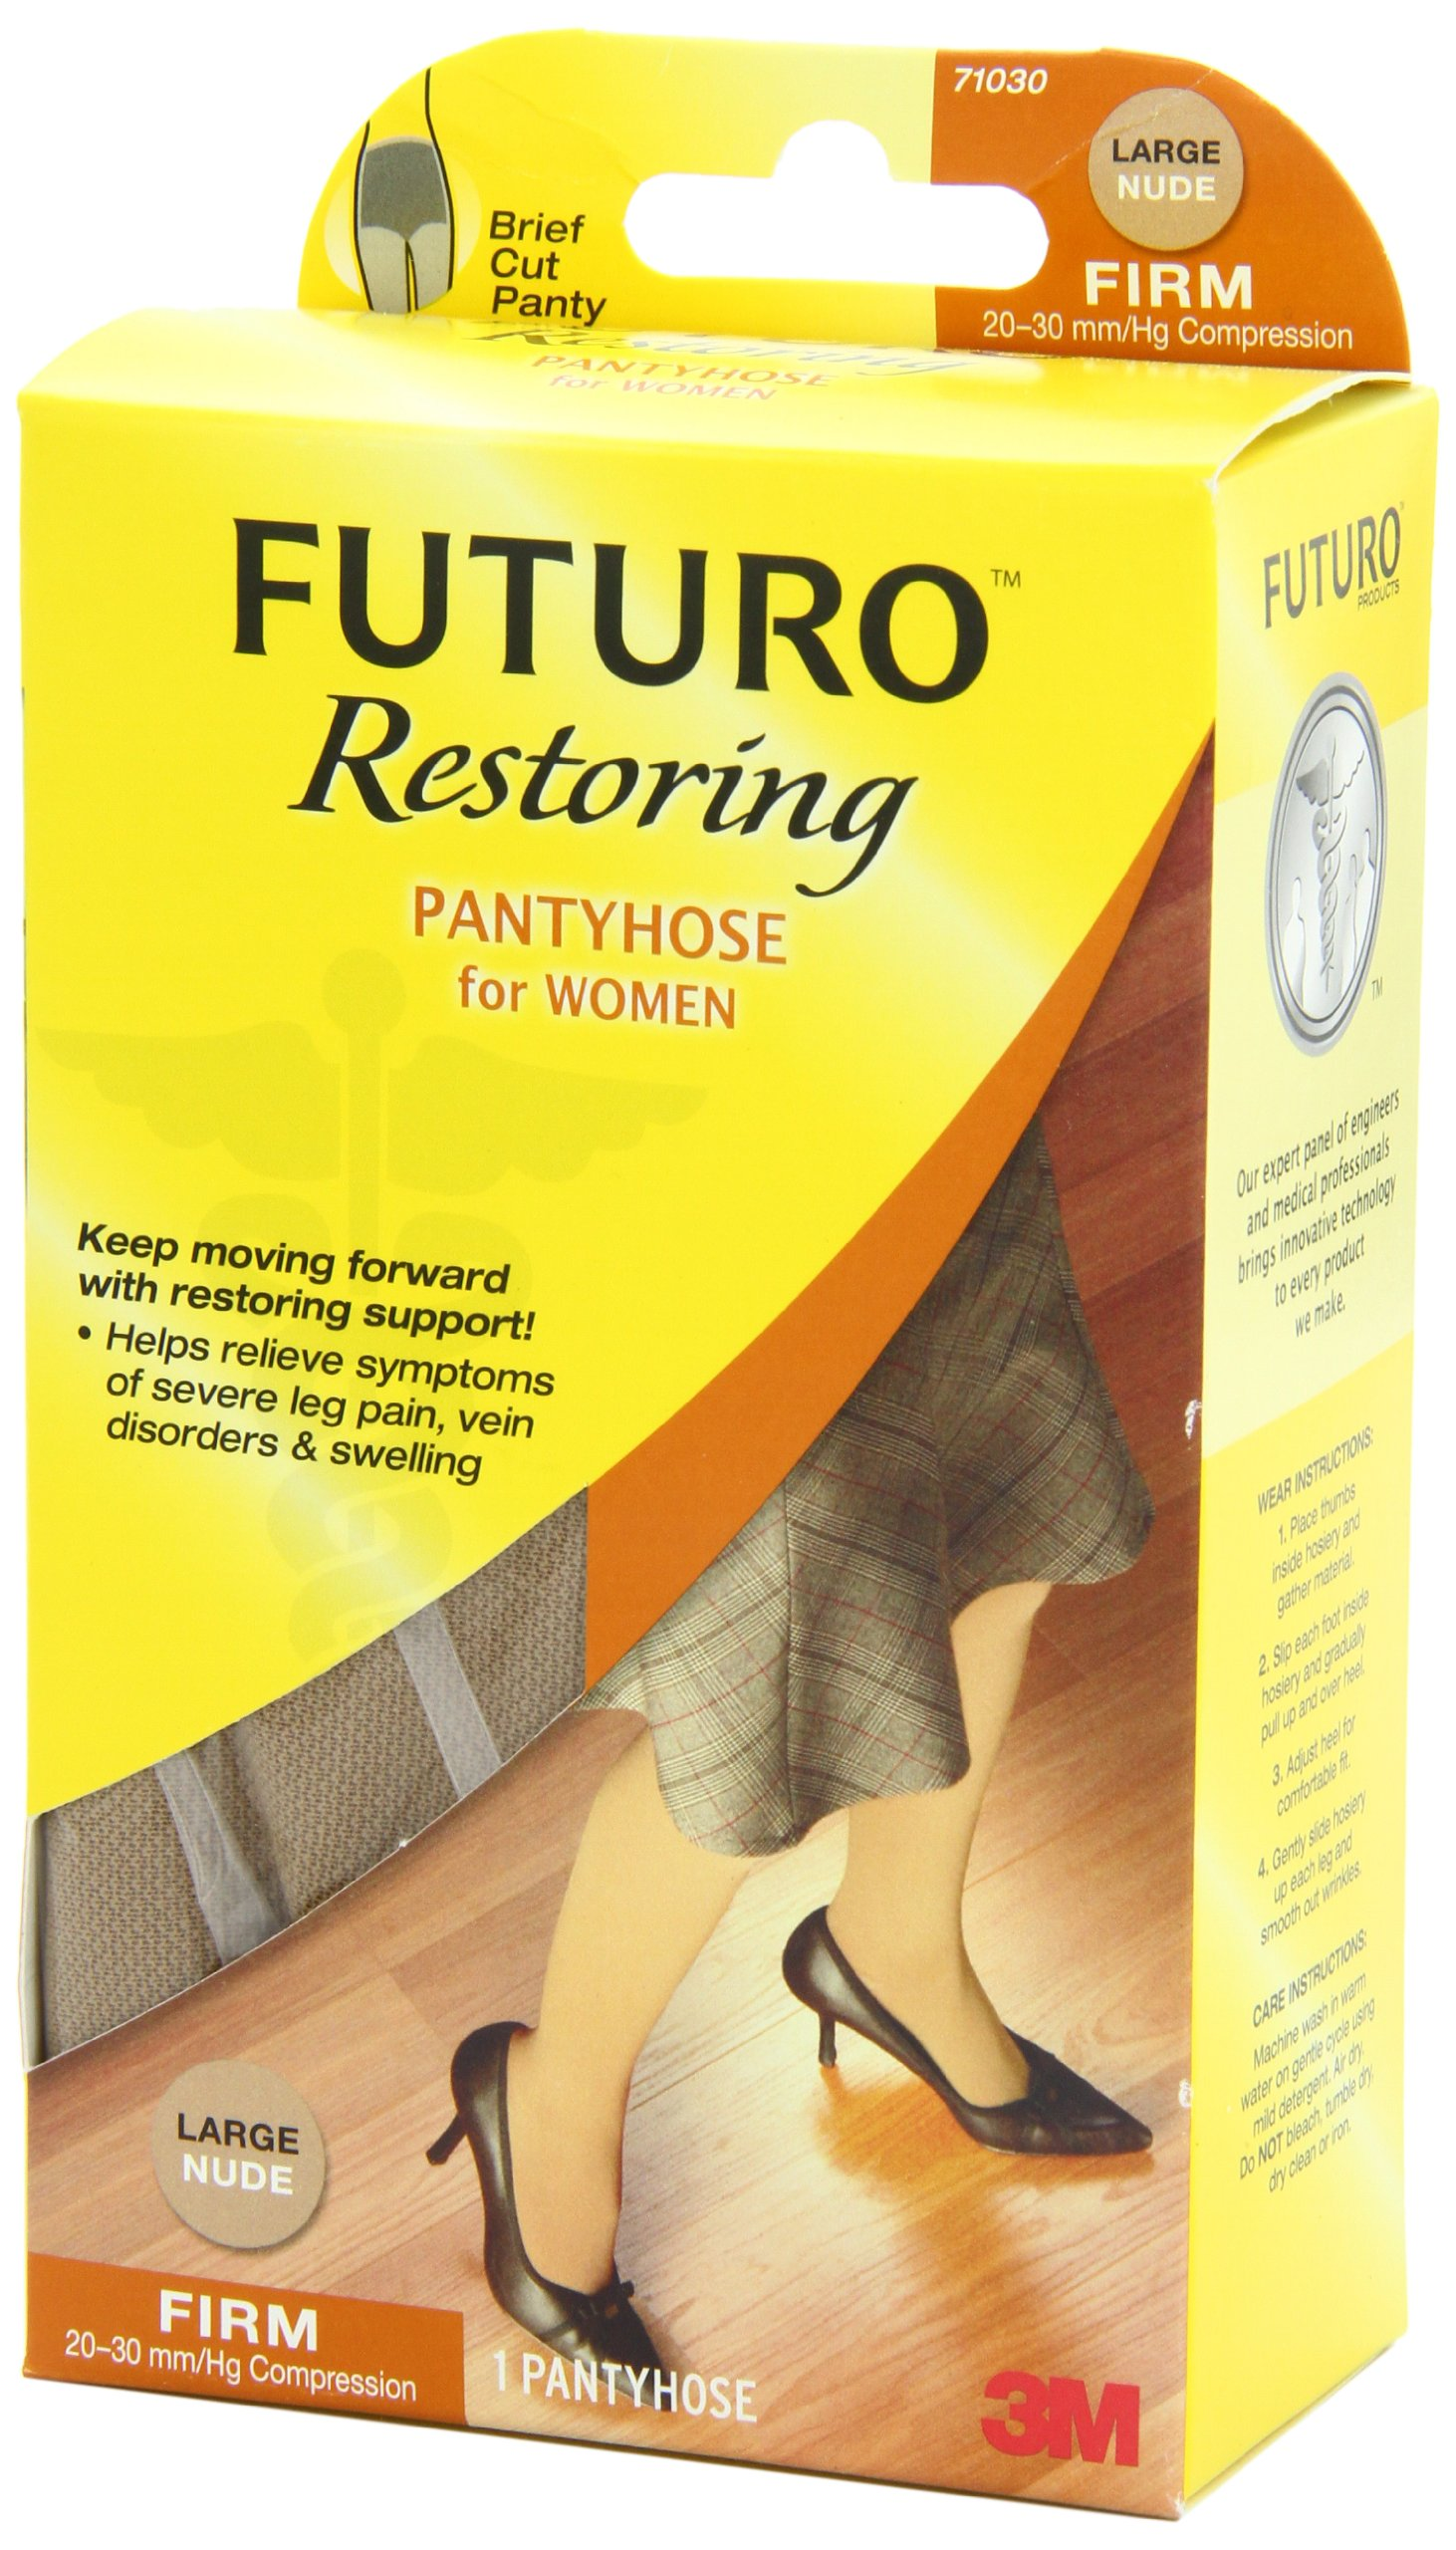 Futuro Restoring Pantyhose for Women, Helps Improve Circulation for Tired Legs, Eases Symptoms of Moderate-to-Severe Varicose Veins, Brief Cut, Large, Nude, Firm Compression by Futuro (Image #6)